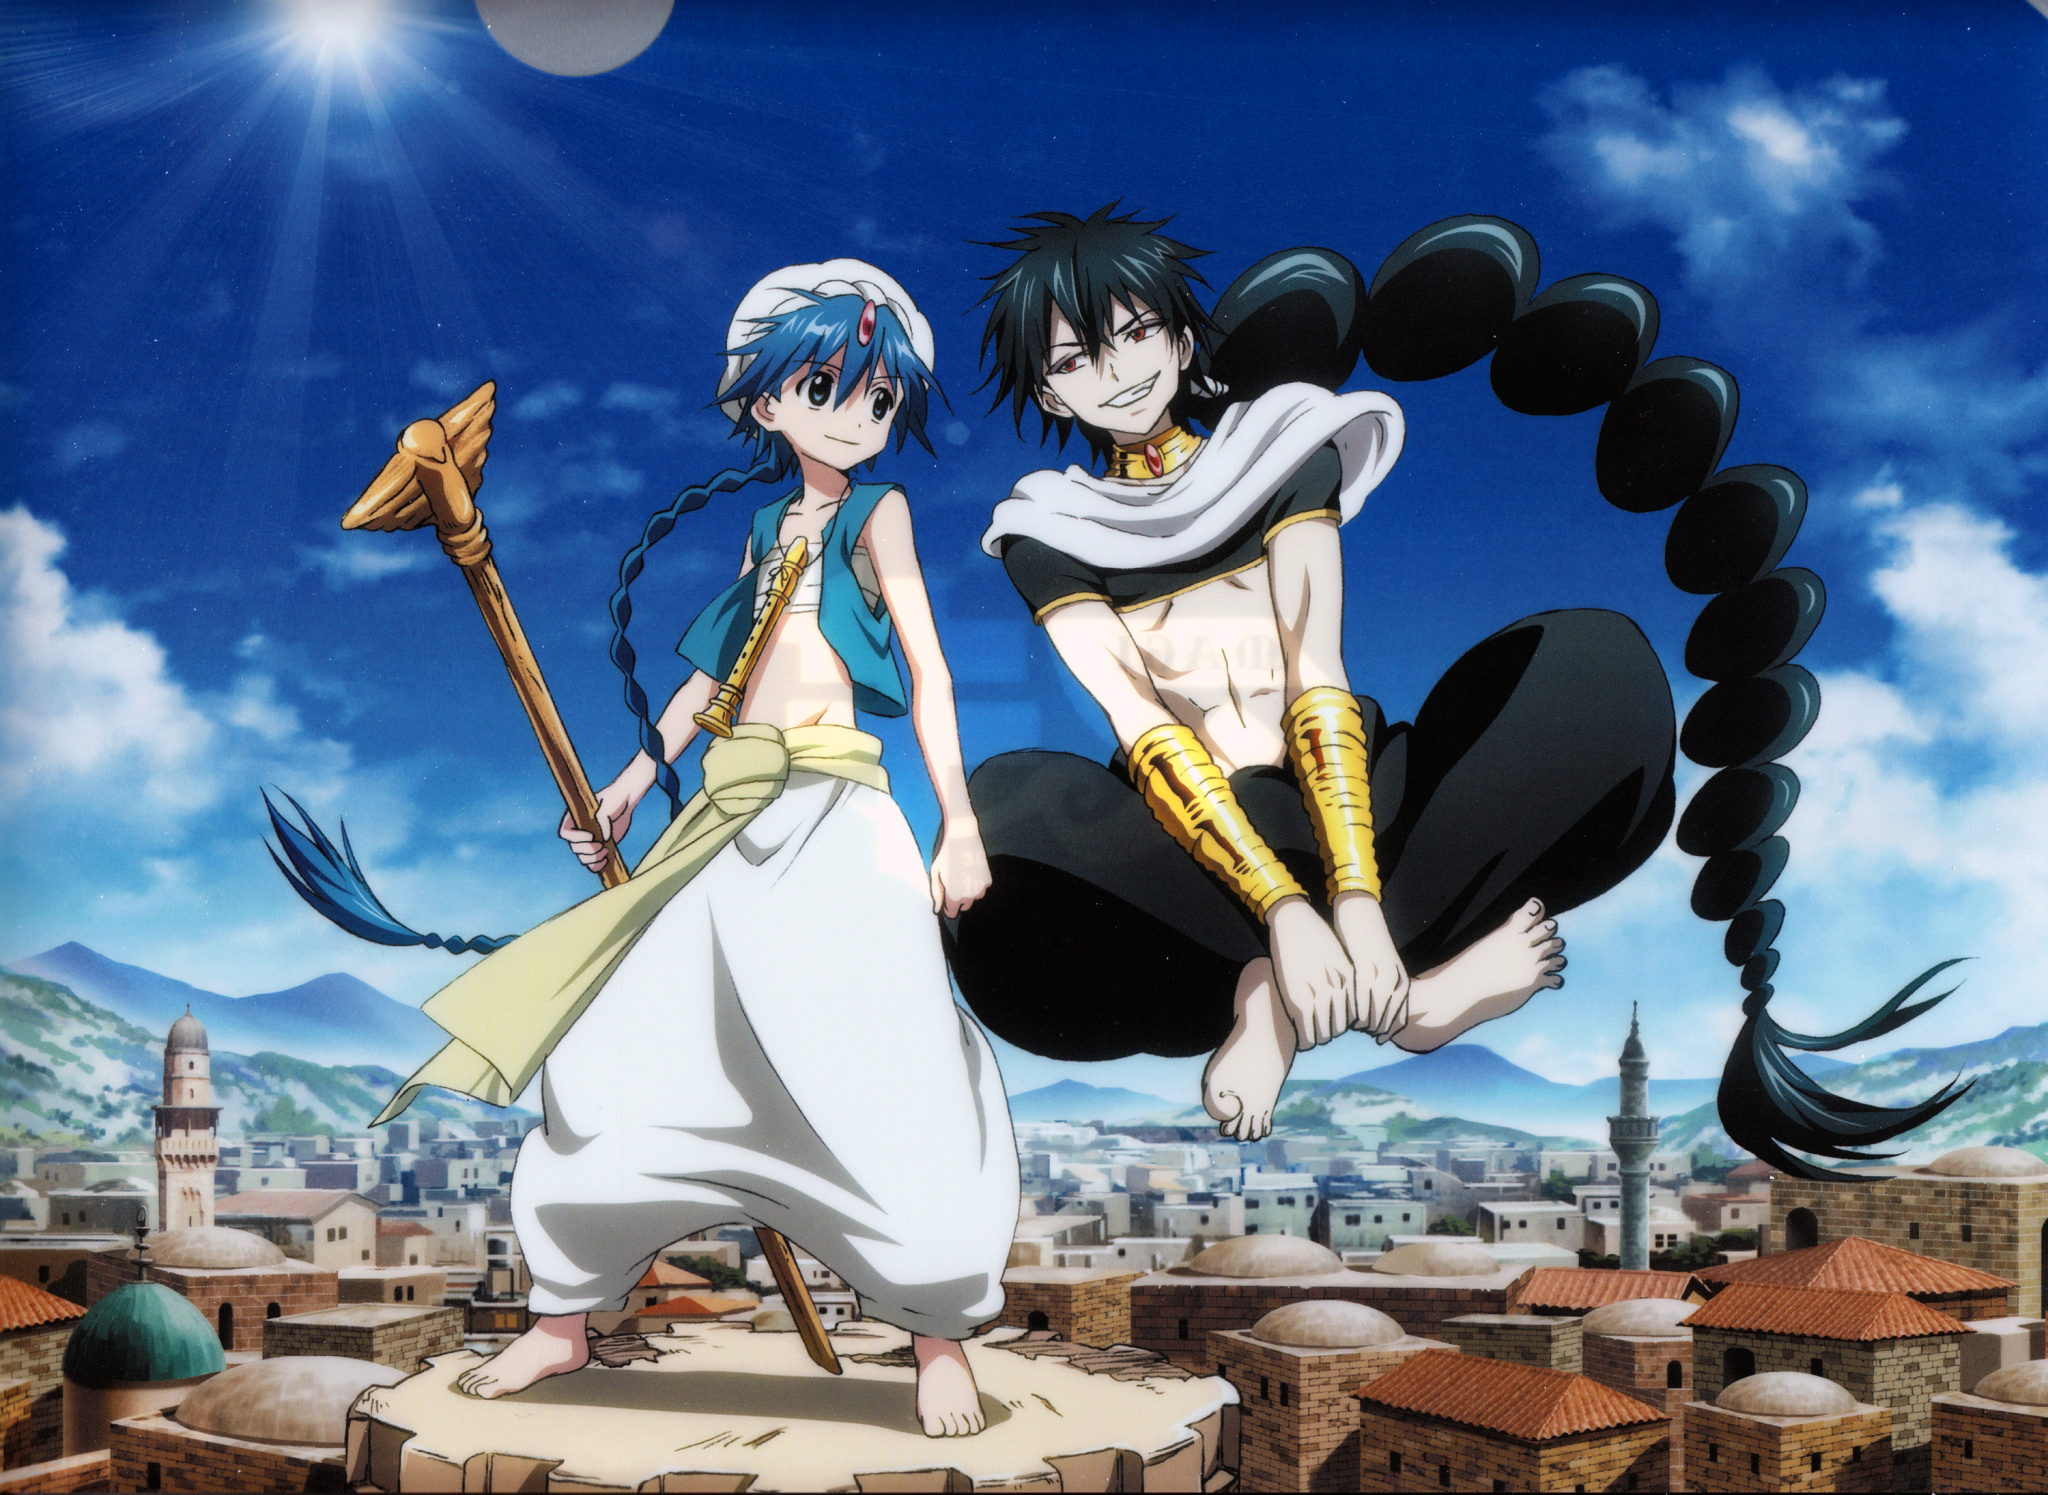 Magi The Labyrinth Of Magic Images Magi The Labyrinth Of Magic Hd Wallpaper And Background Photos